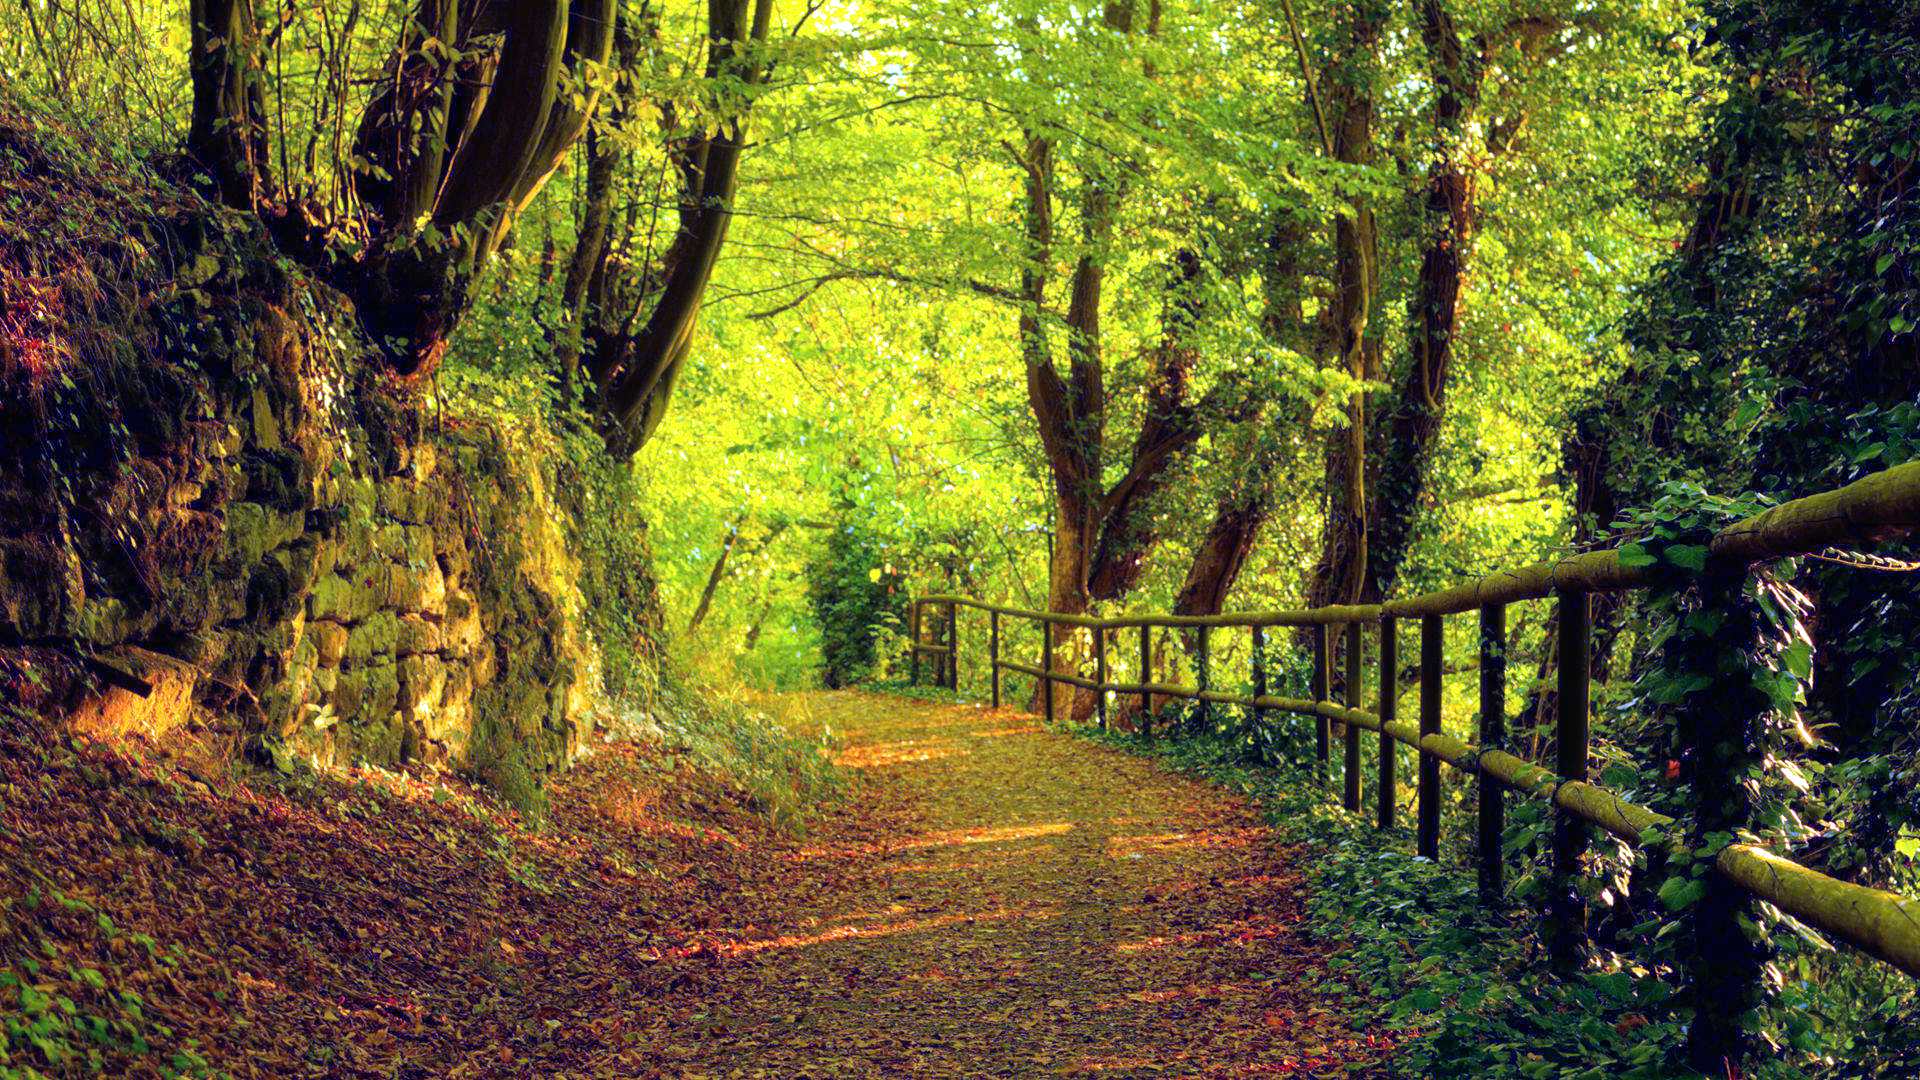 trees autumn season forest path high resolution wallpaper